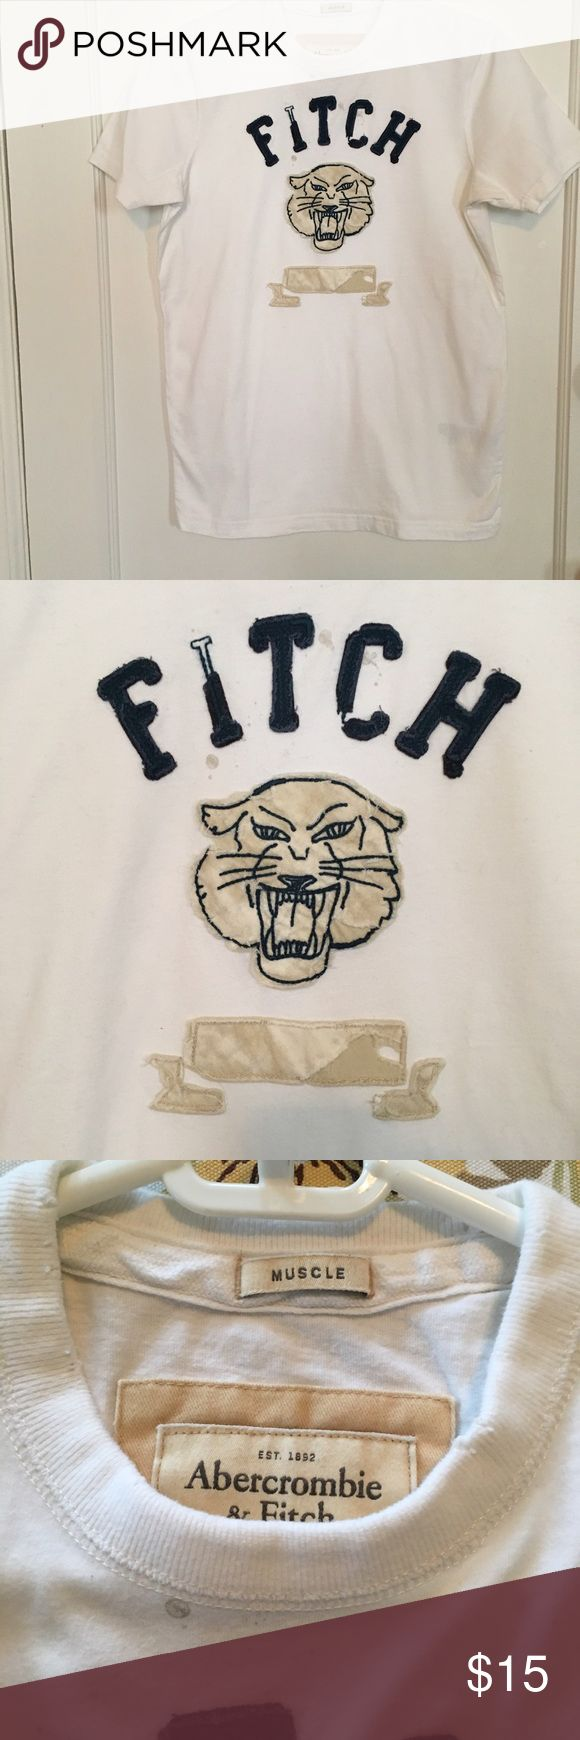 Abercrombie and Fitch shirt Abercrombie and Fitch white shirt. Muscle fit, vintage look. The collar, sleeve, end of the body as well as the letter has ripped look. Abercrombie & Fitch Shirts Tees - Short Sleeve